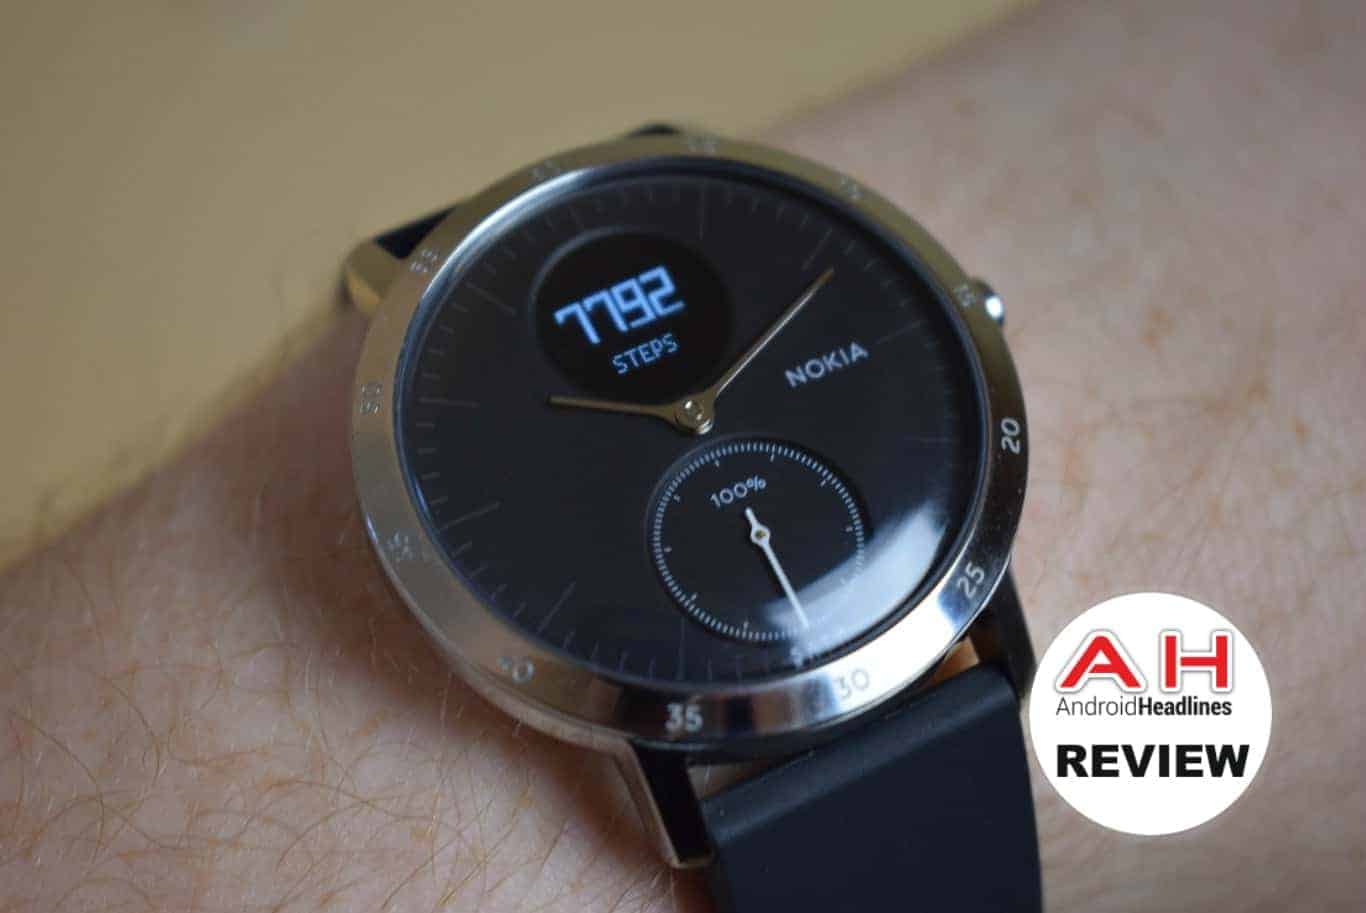 Nokia Steel HR Review The Traditional Watch Meets Fitness Tracker